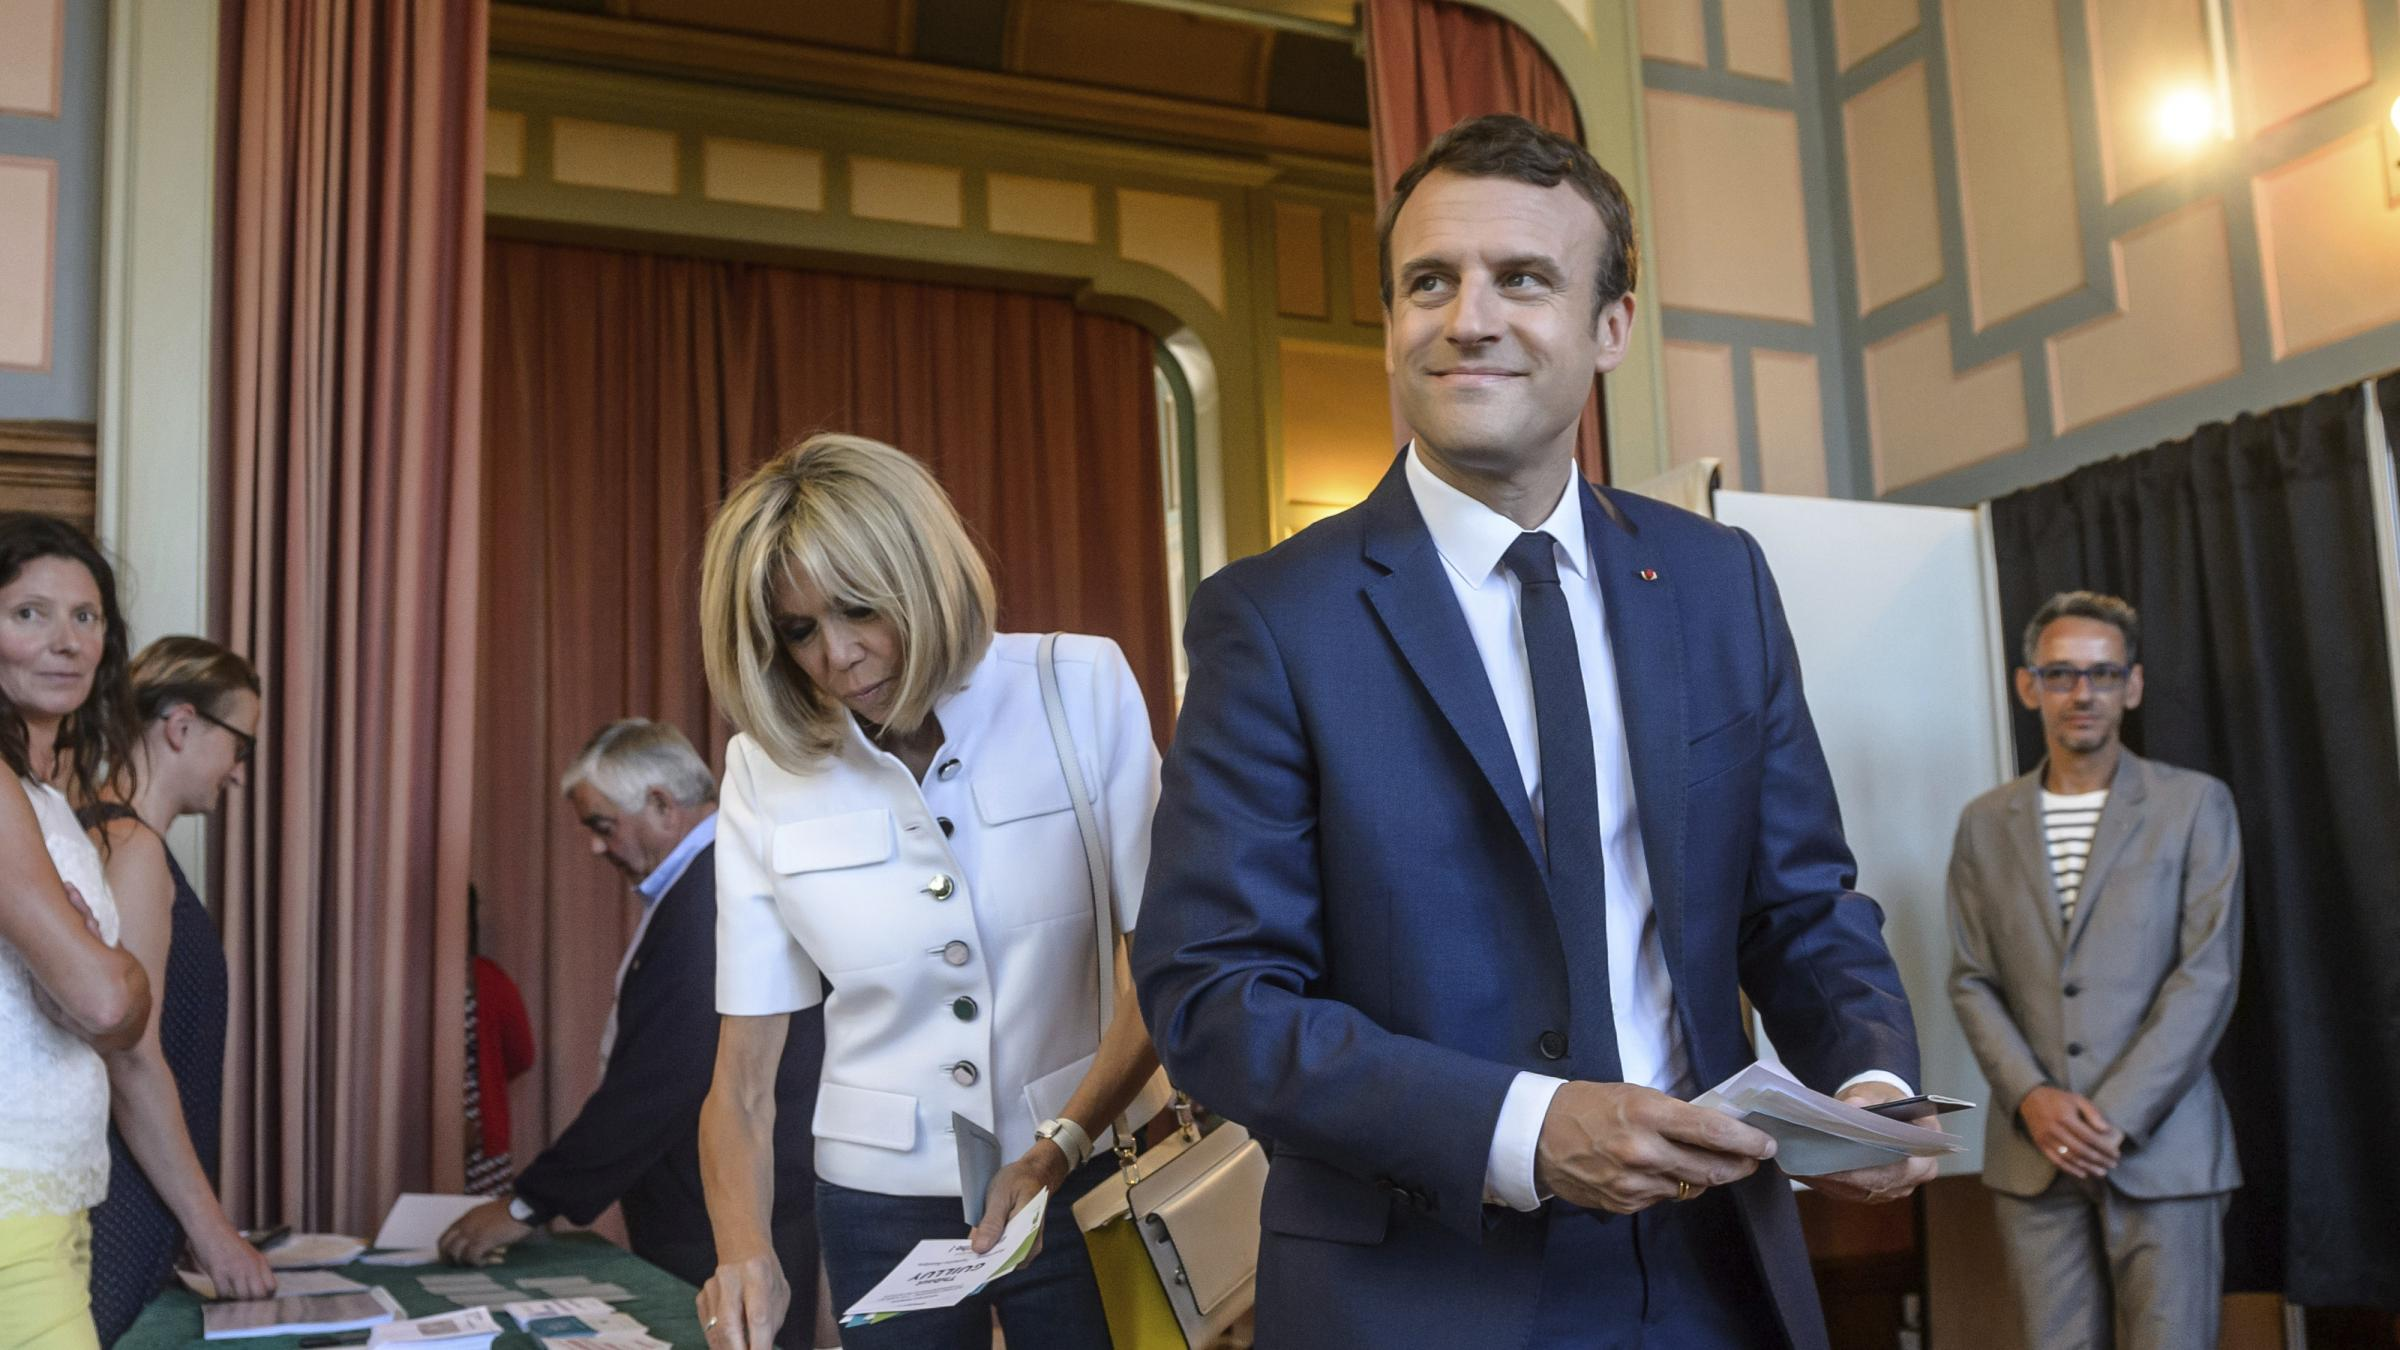 Emmanuel Macron's party wins big in France, projections suggest